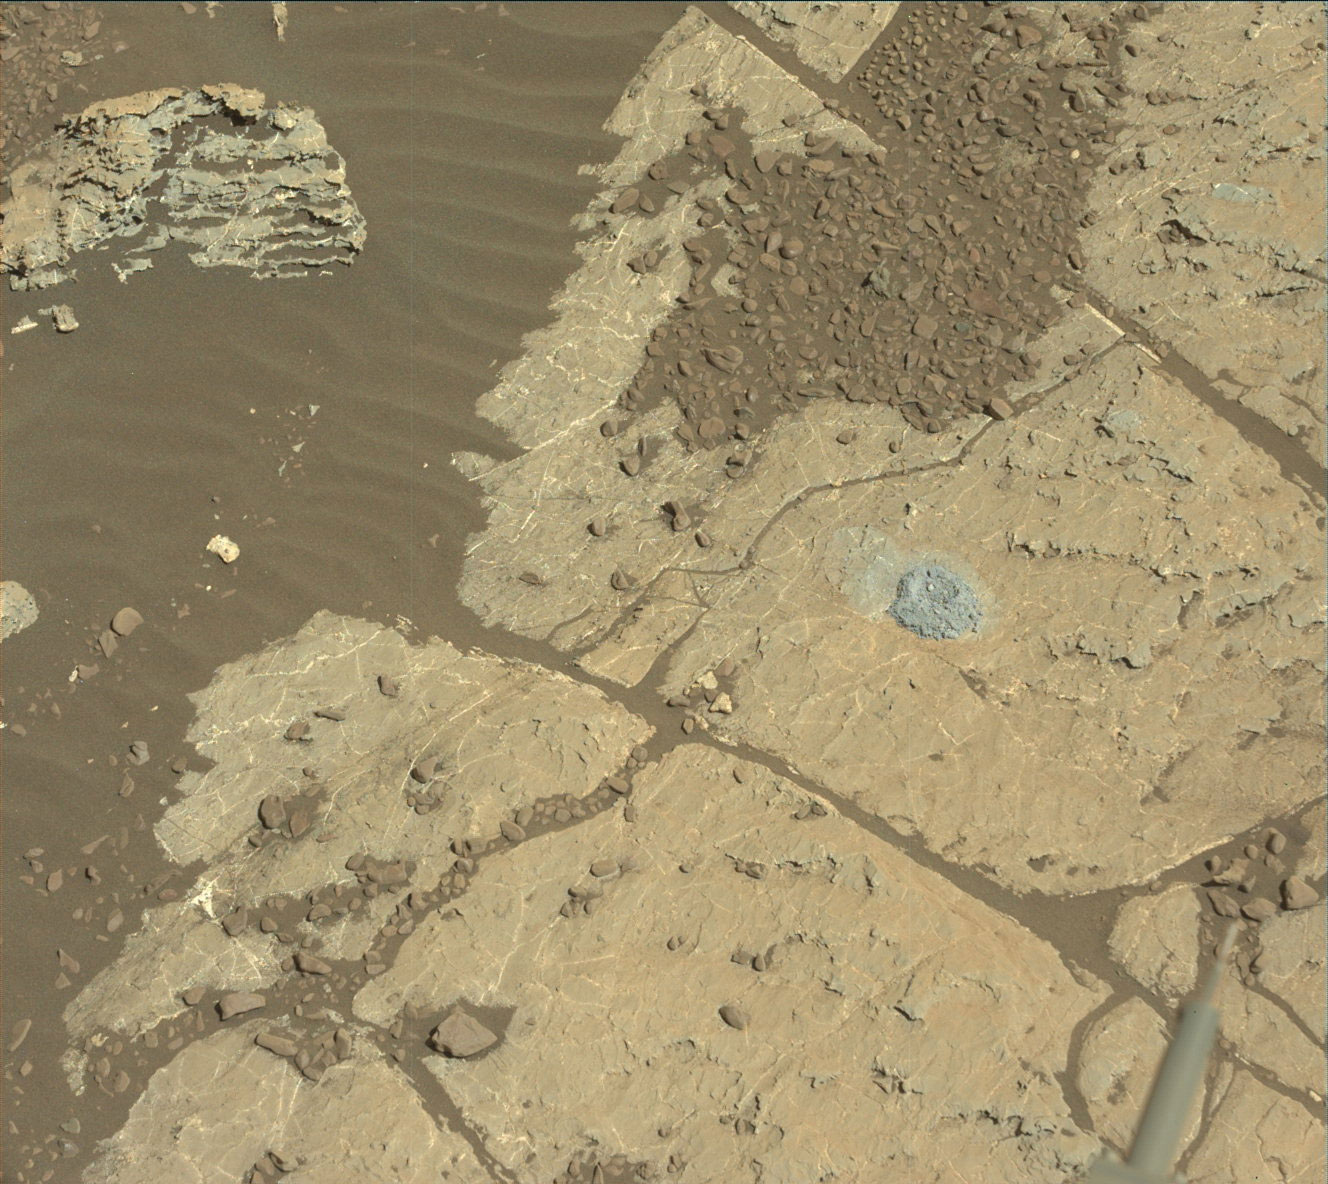 Mars Curiosity Rover Conducts First Test of a New Drilling ...